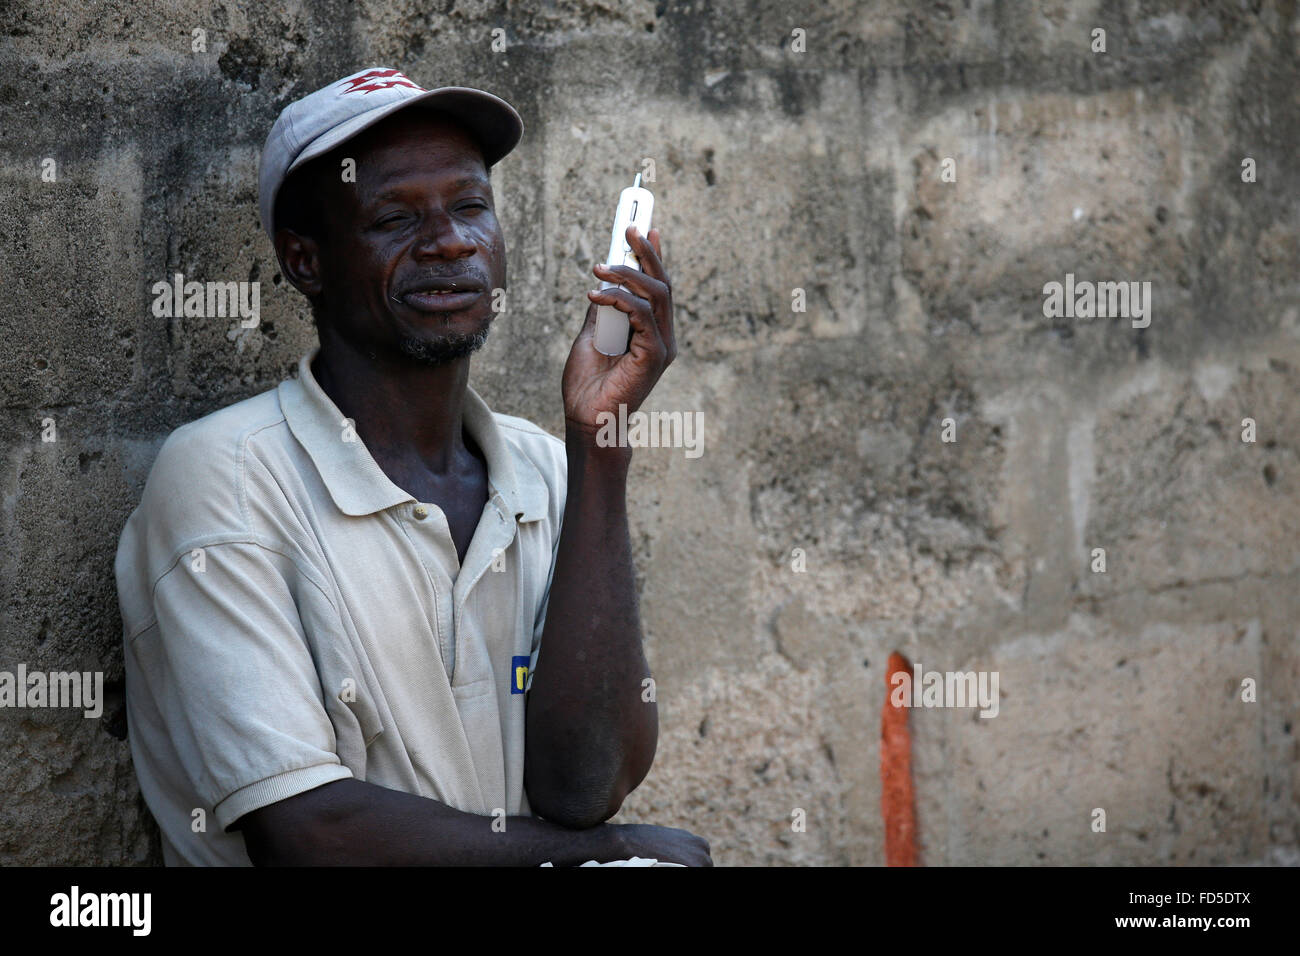 African man listening to the radio. - Stock Image